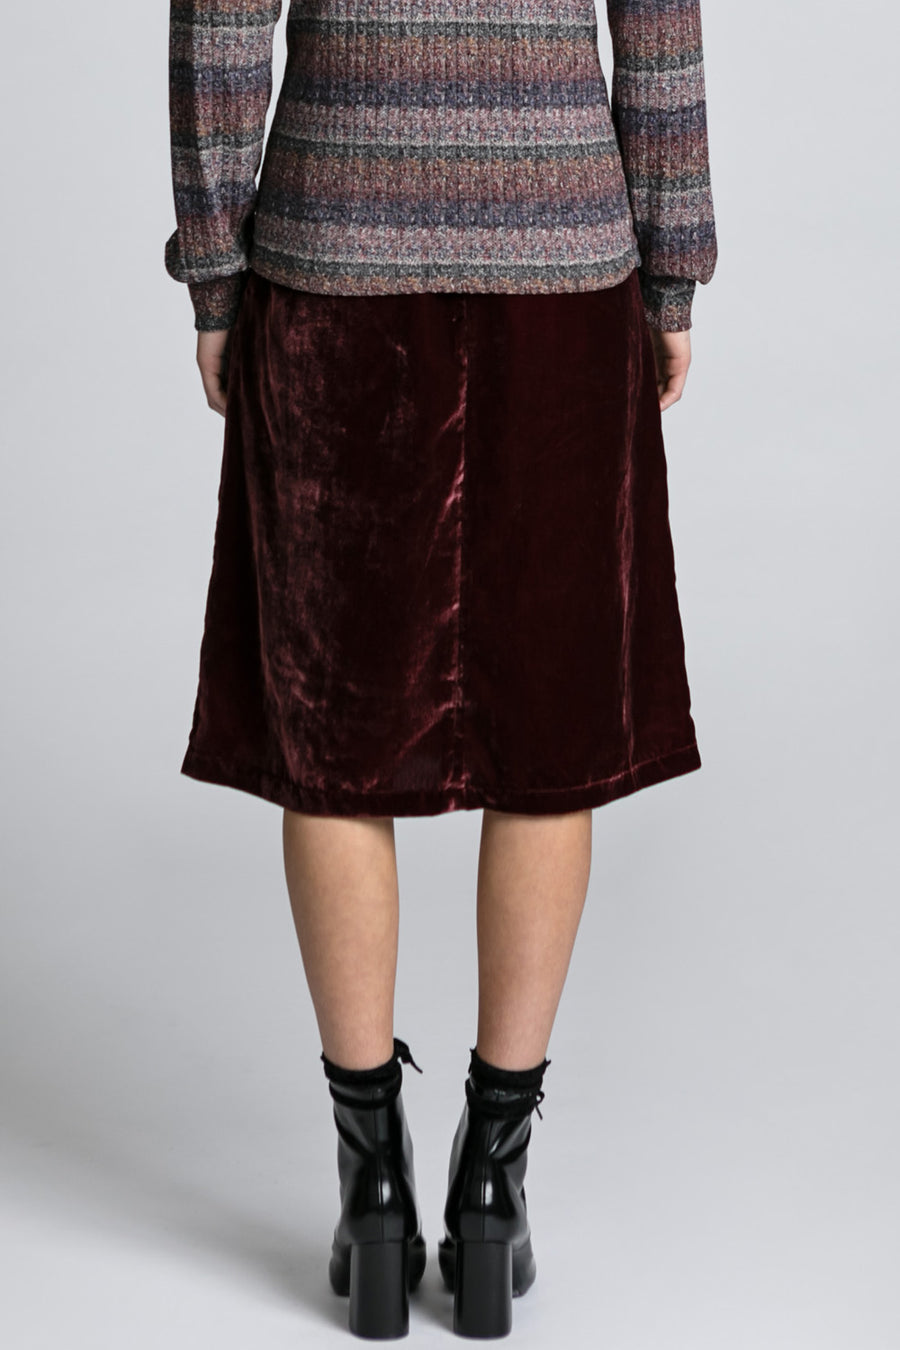 The Cross Skirt